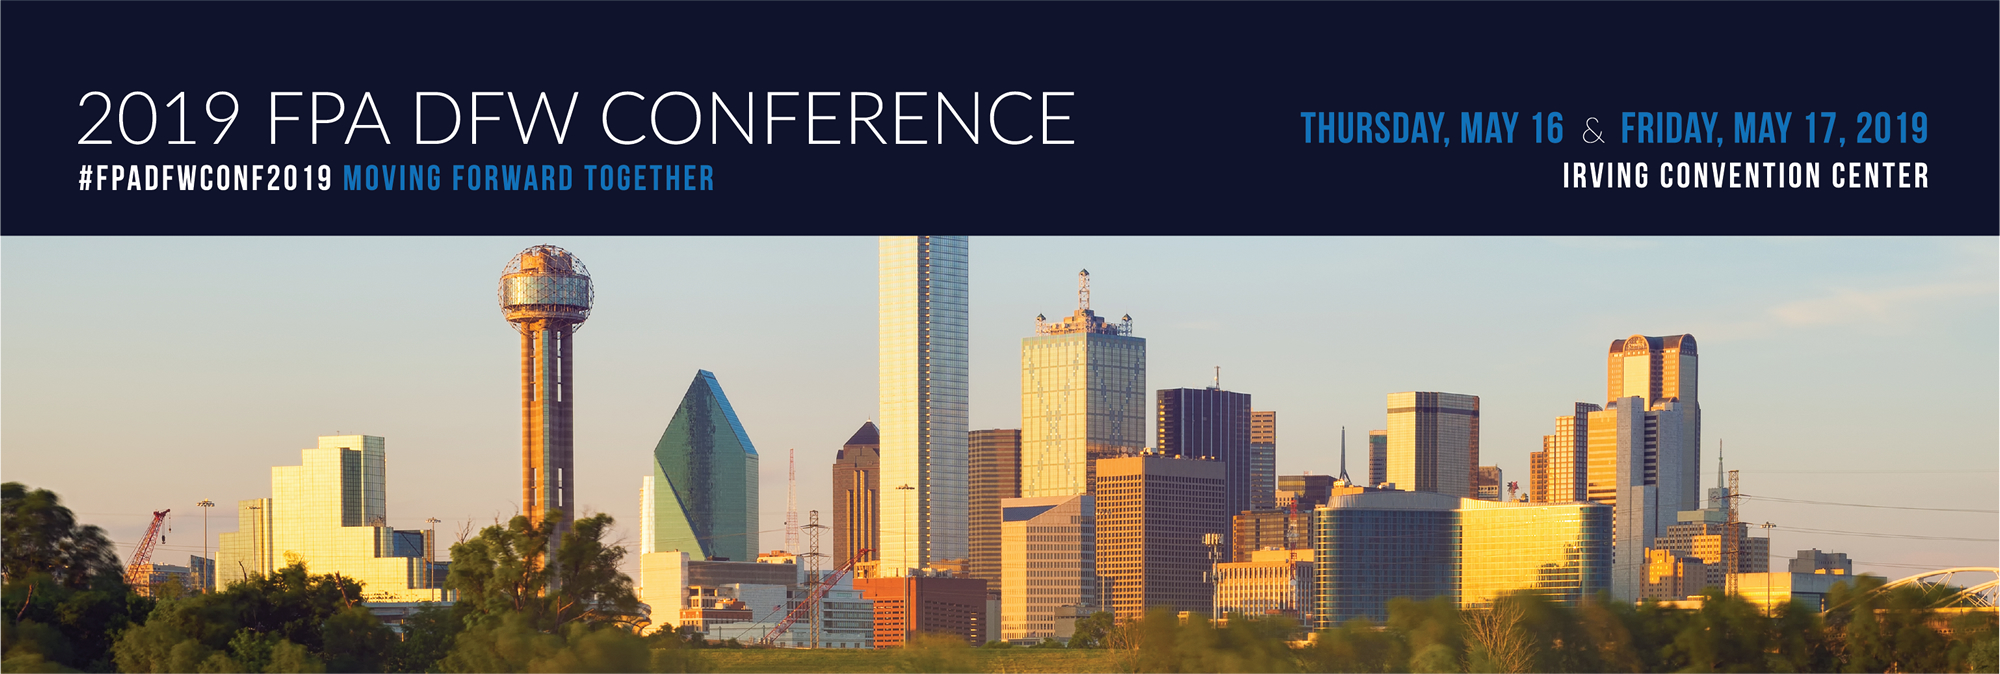 fpa-dfw-conference-banner